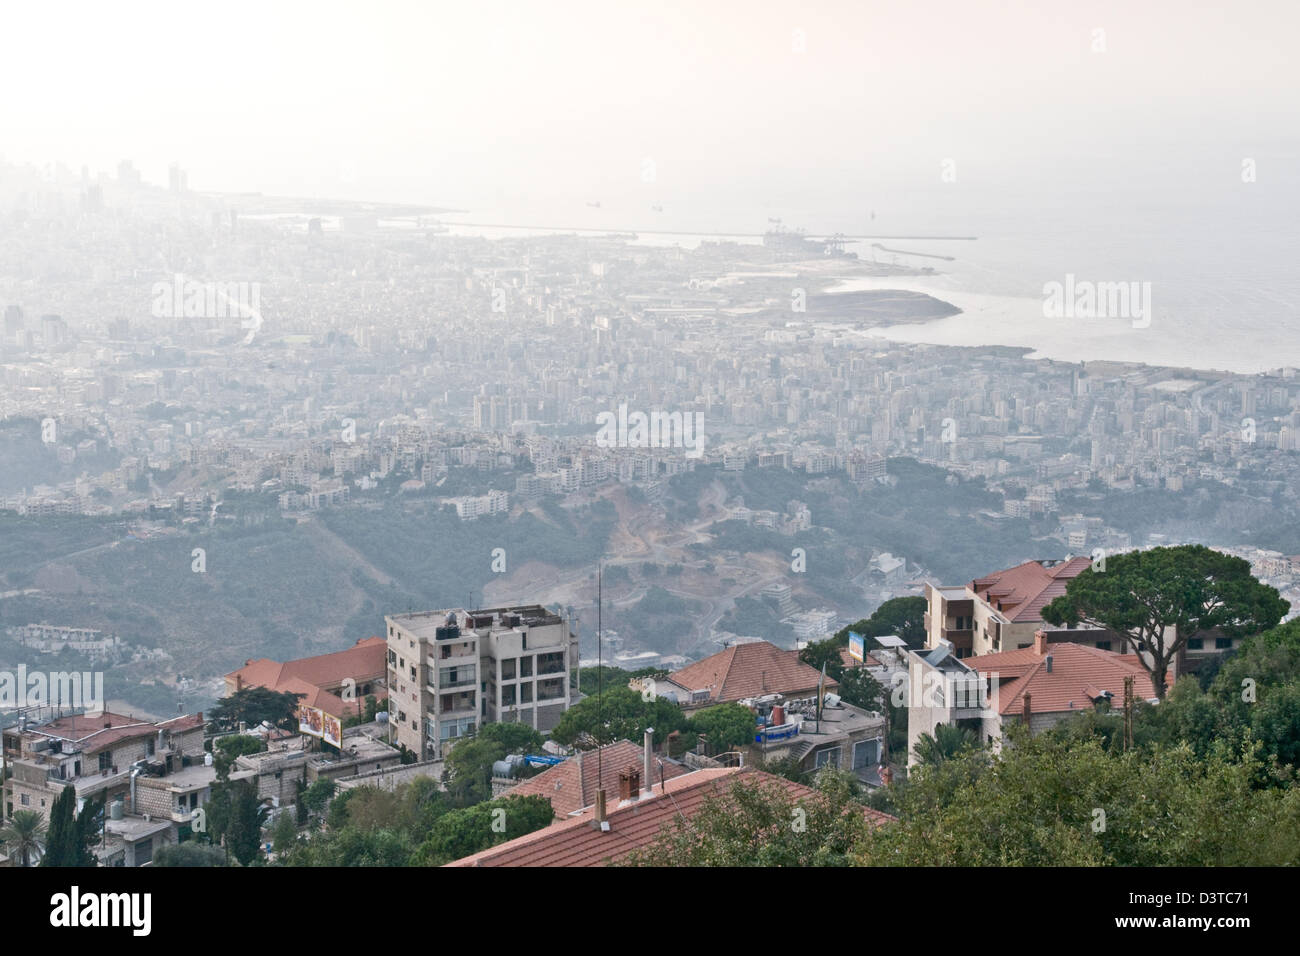 A view of the Lebanese city and port district of Beirut as seen from the town of Beit Meri in the mountains above. Stock Photo